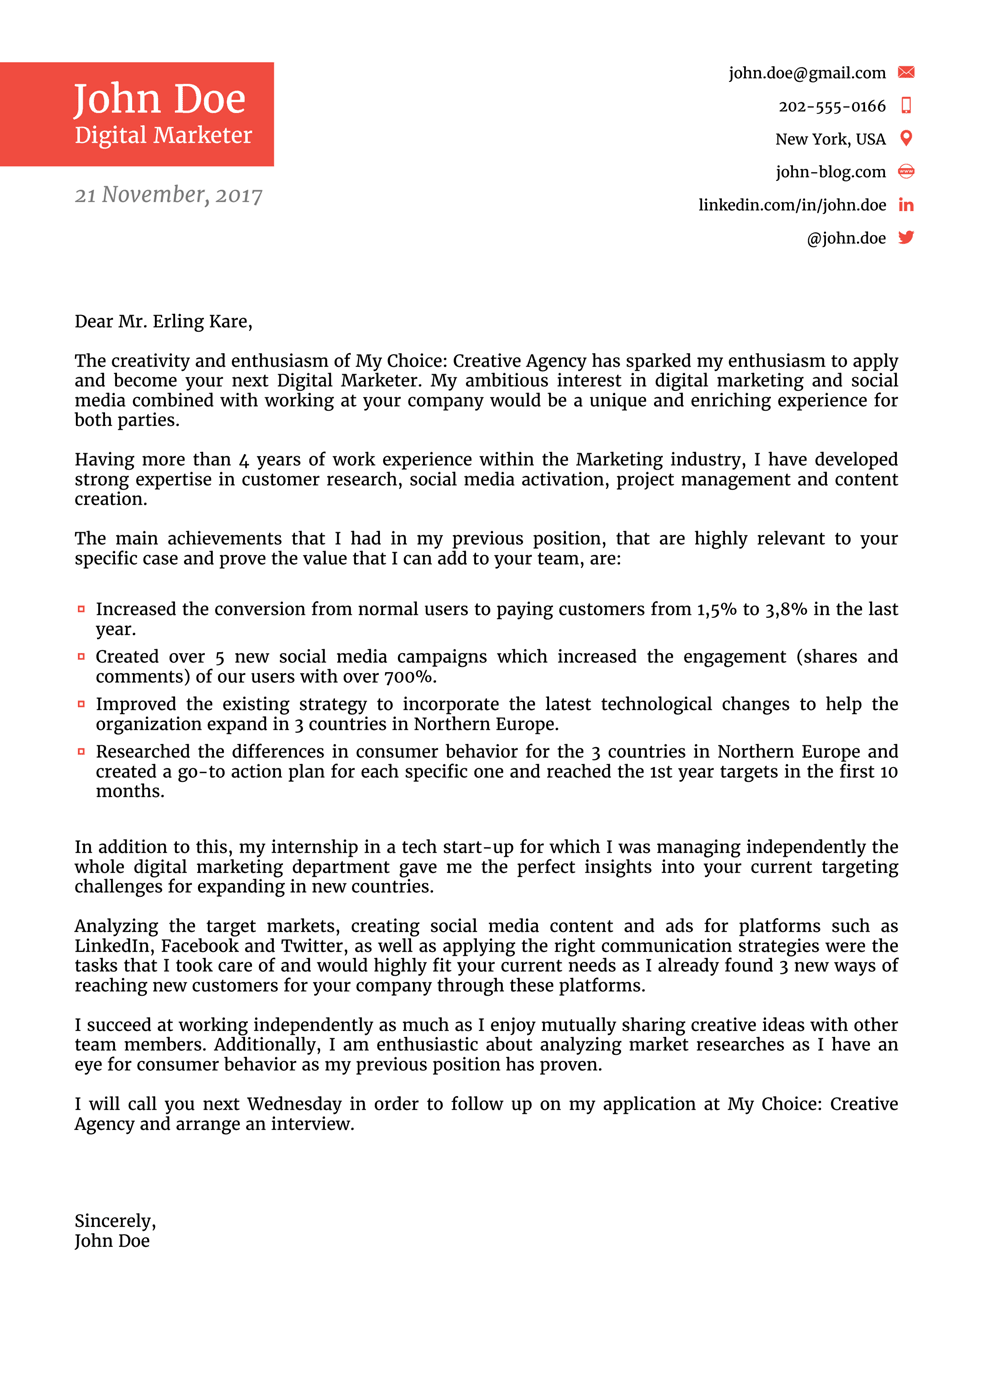 Application Letter For Job Slideshare, Functional Cover Letter Template, Application Letter For Job Slideshare